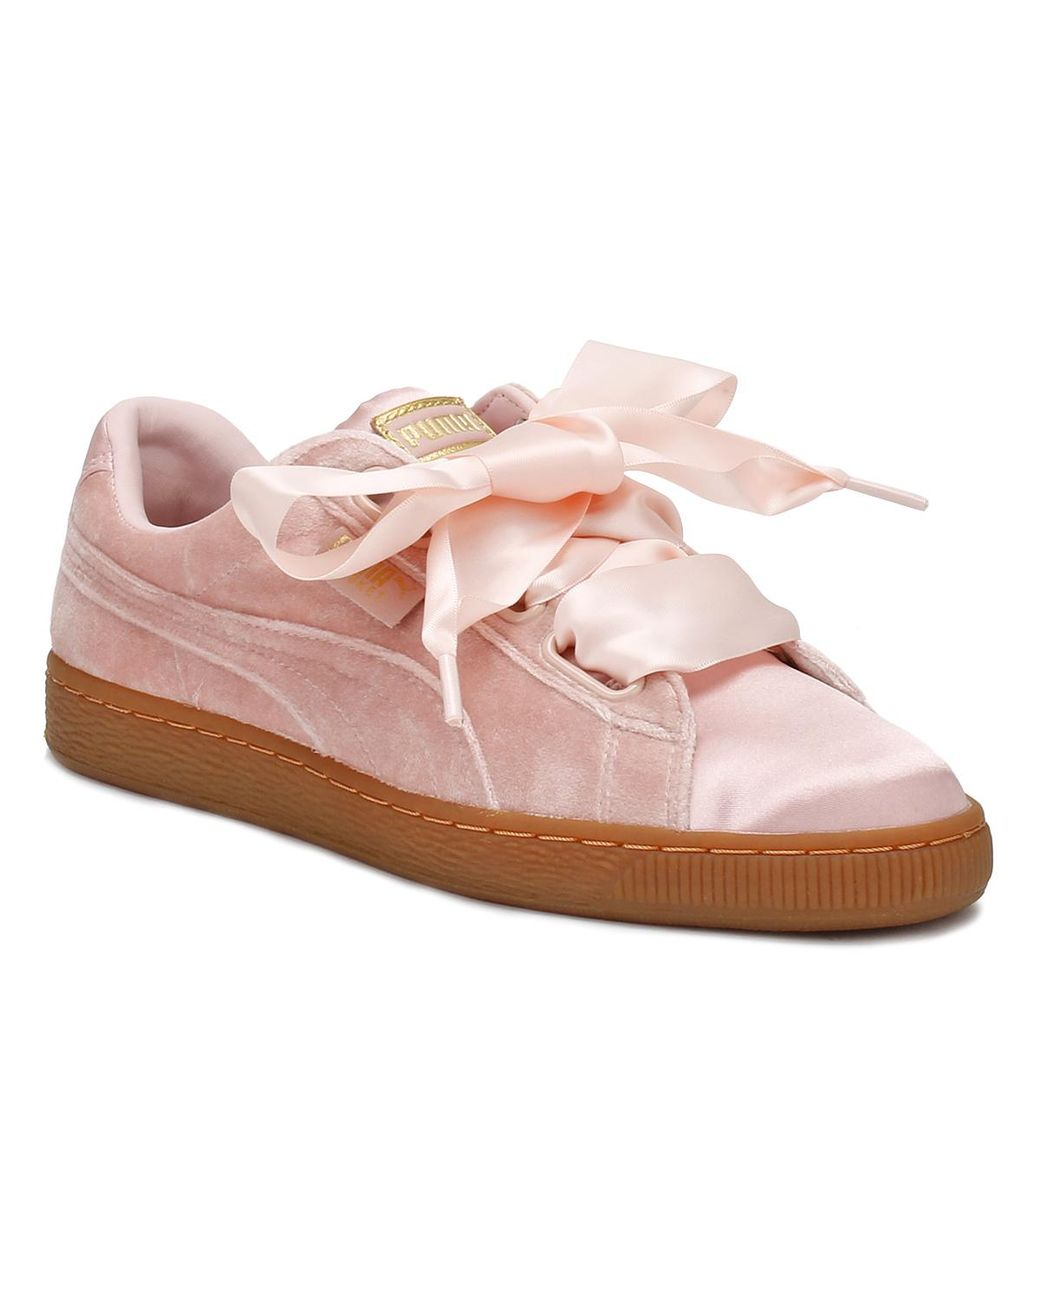 purchase cheap d7073 430e4 Womens Pink / Gum Velvet Basket Heart Sneakers Women's Shoes (trainers) In  Pink